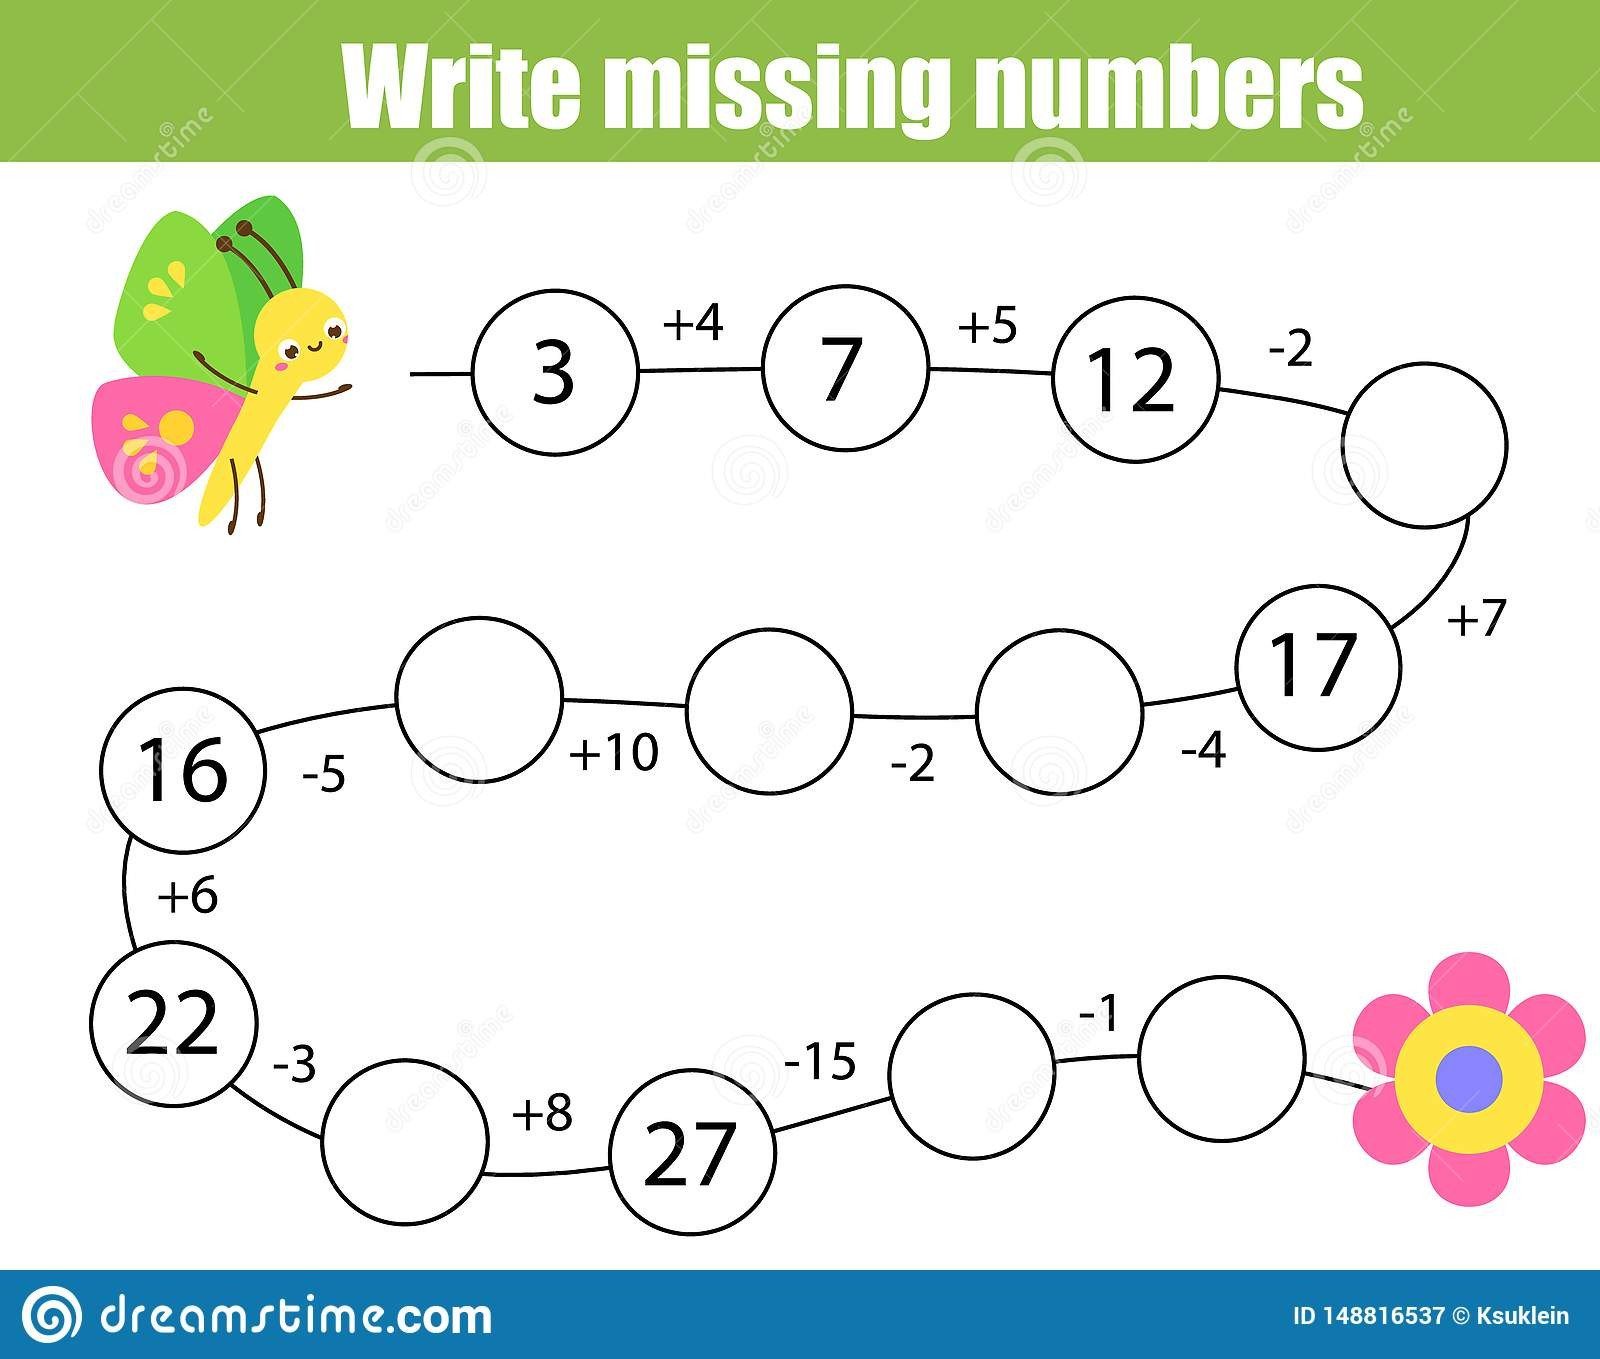 Missing Numbers In Equations Worksheets Mathematics Educational Game for Children Plete the Row